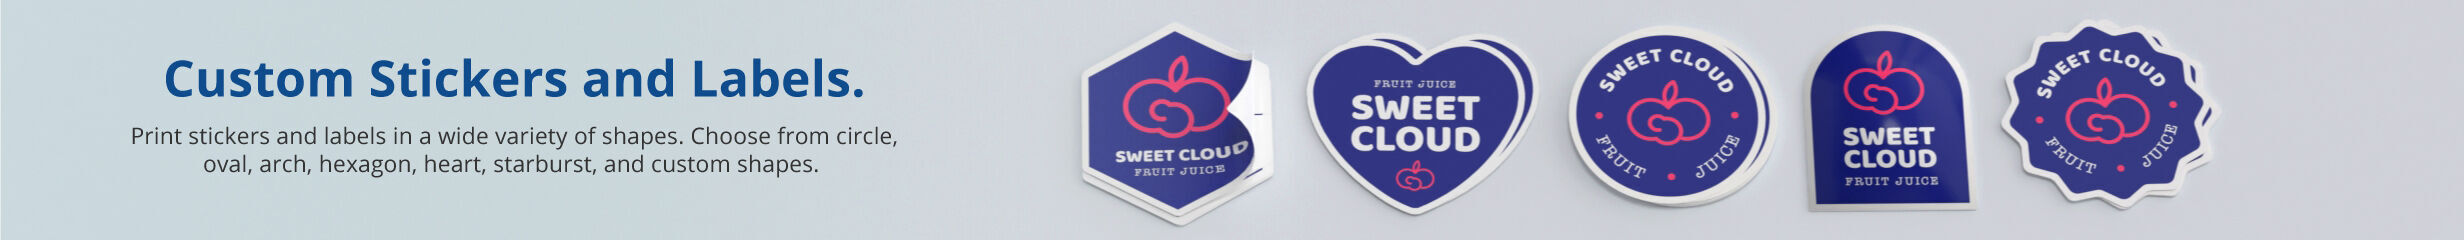 Custom Stickers and Labels